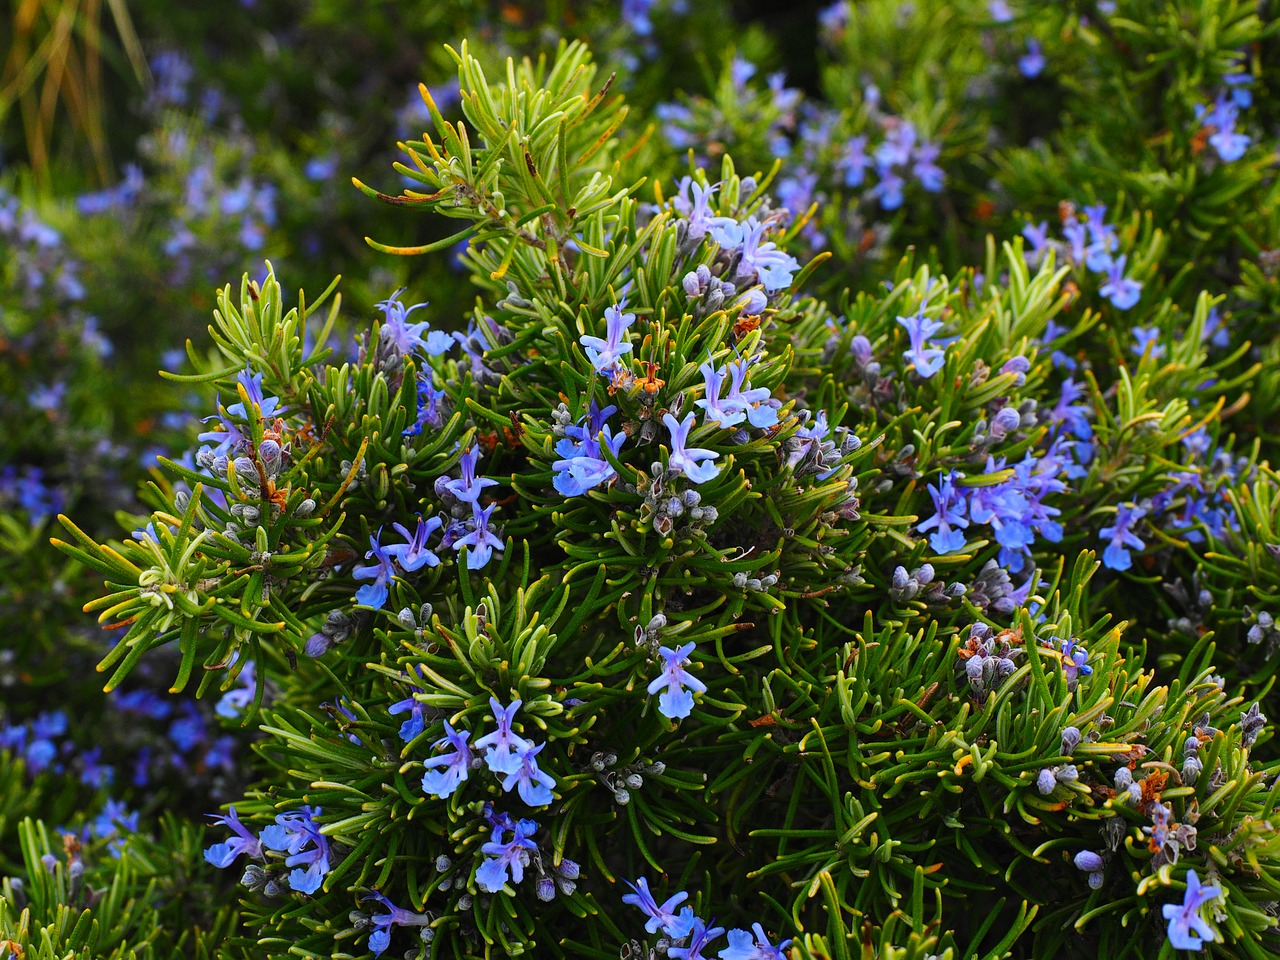 Image: Rosemary oil scientifically documented as a natural medicine treatment for stress